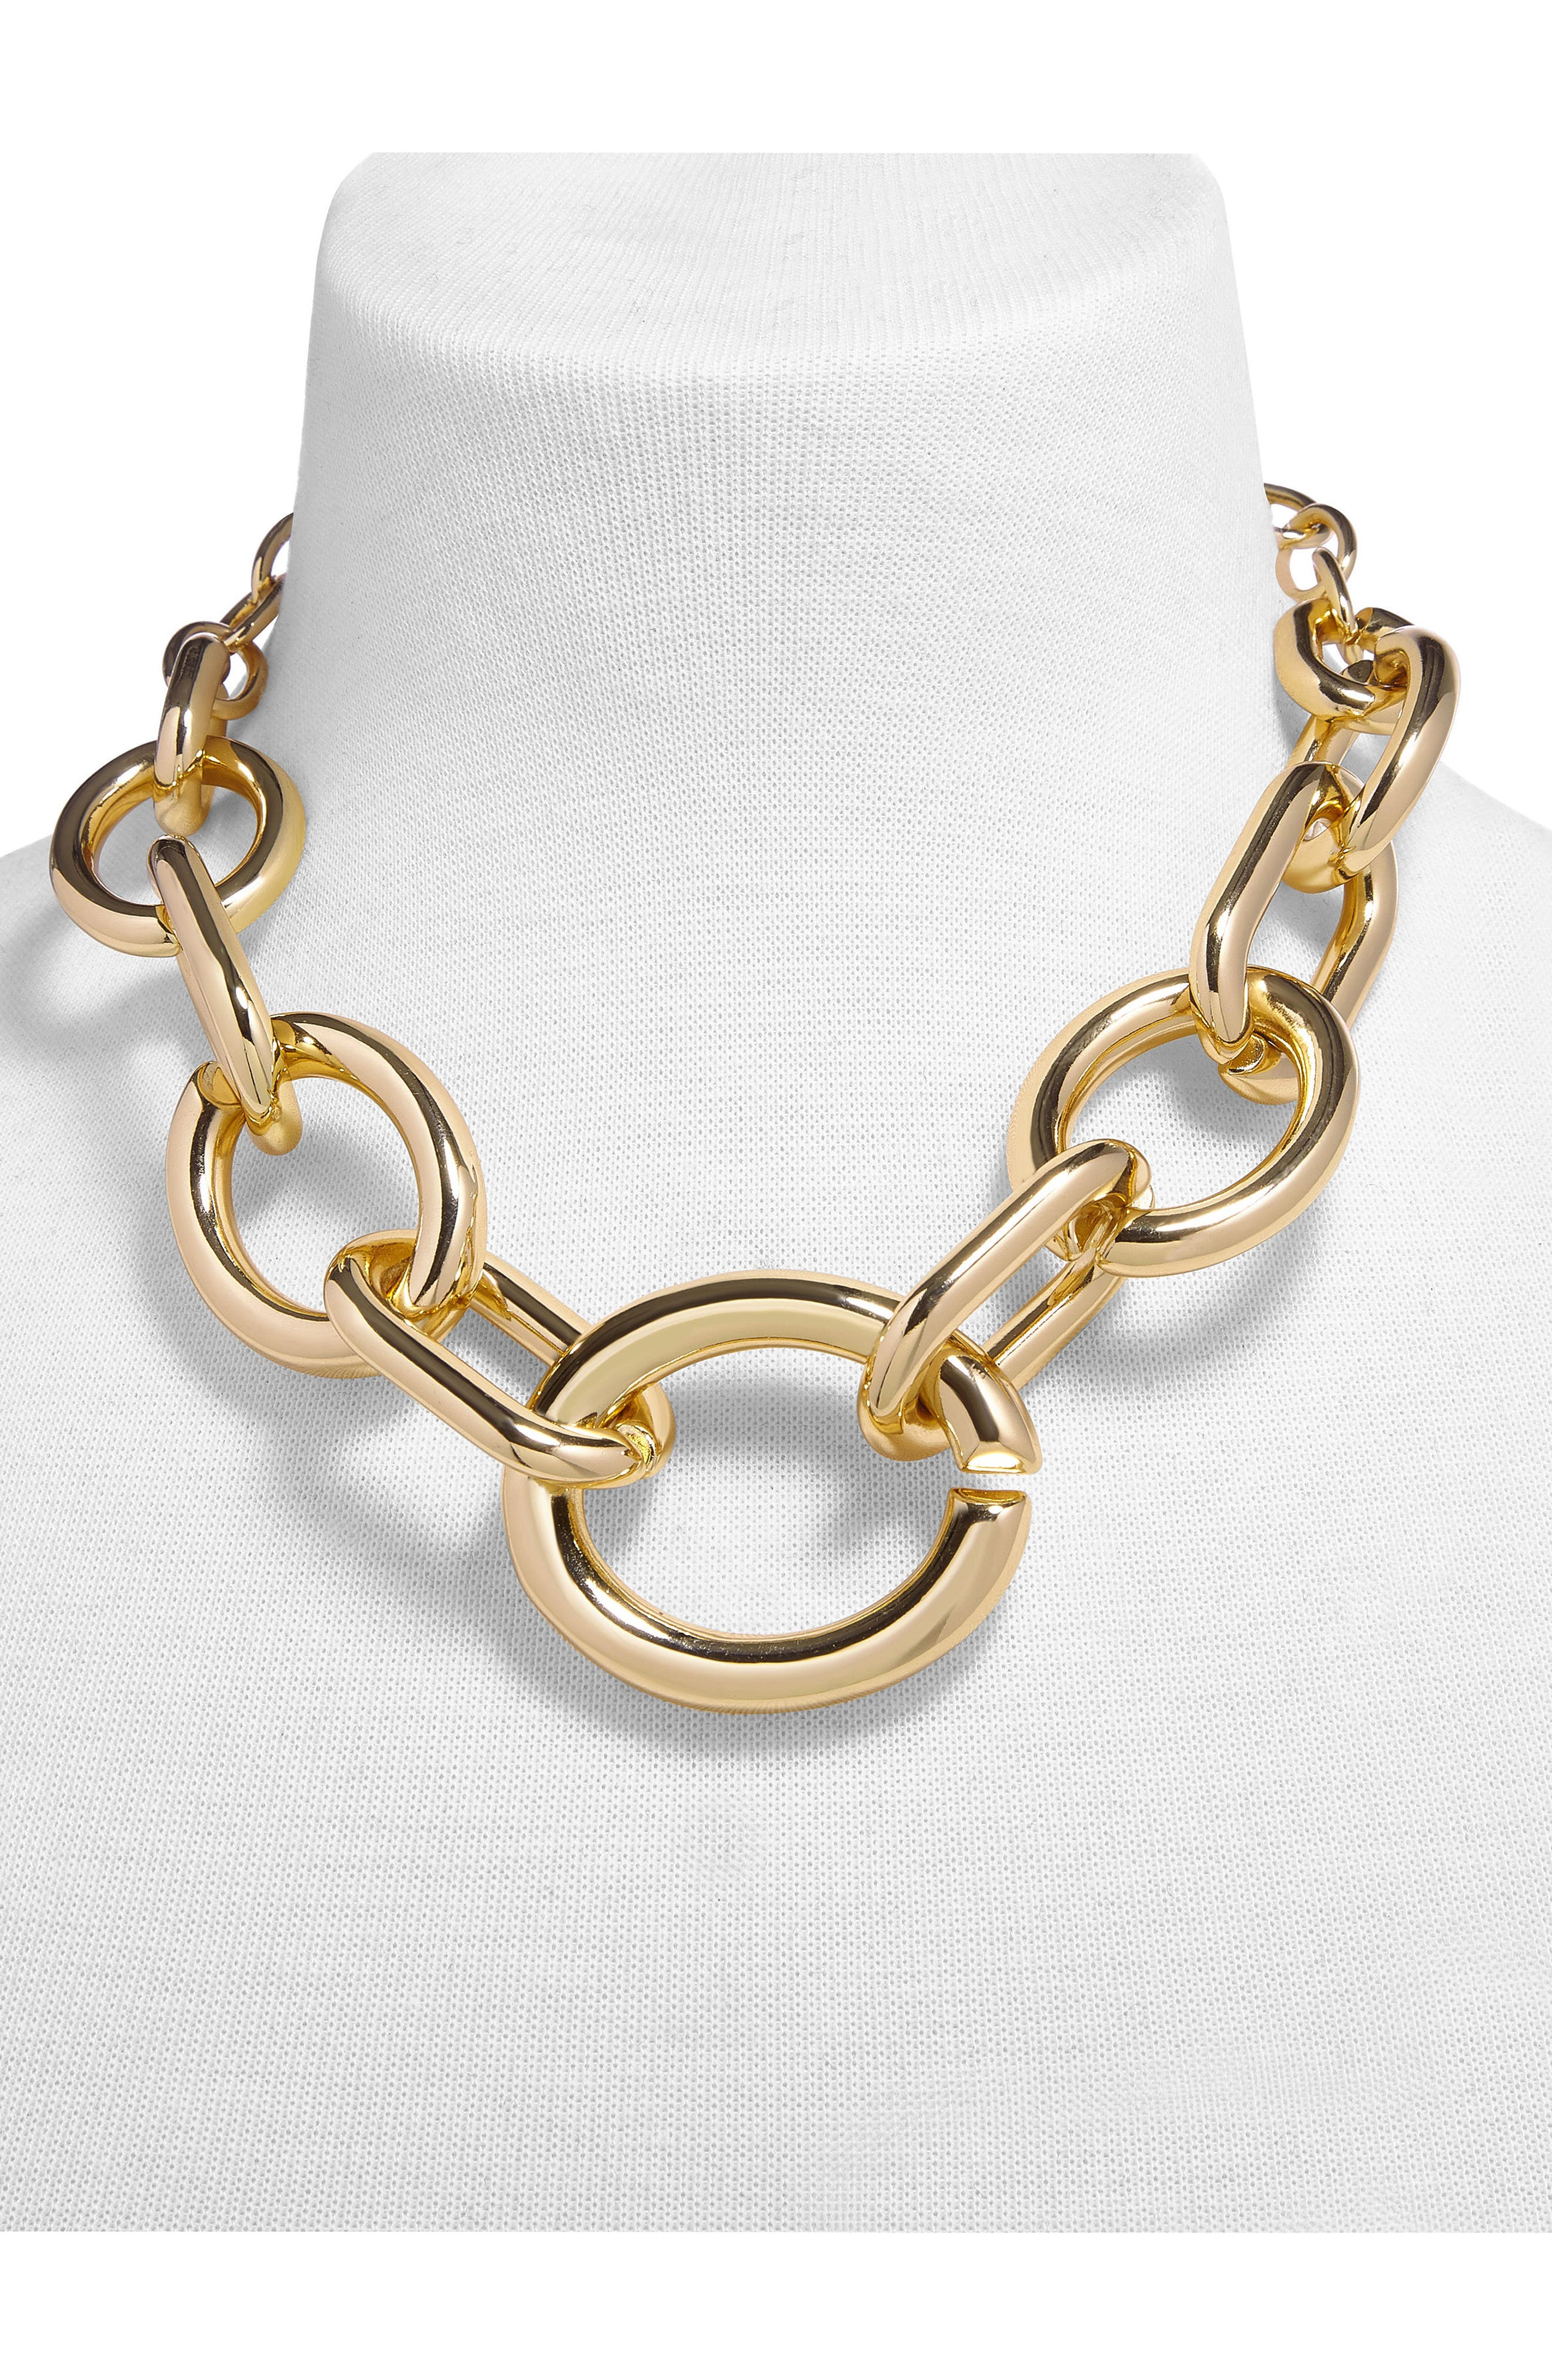 Mardie Linked Statement Necklace,                             Alternate thumbnail 2, color,                             719